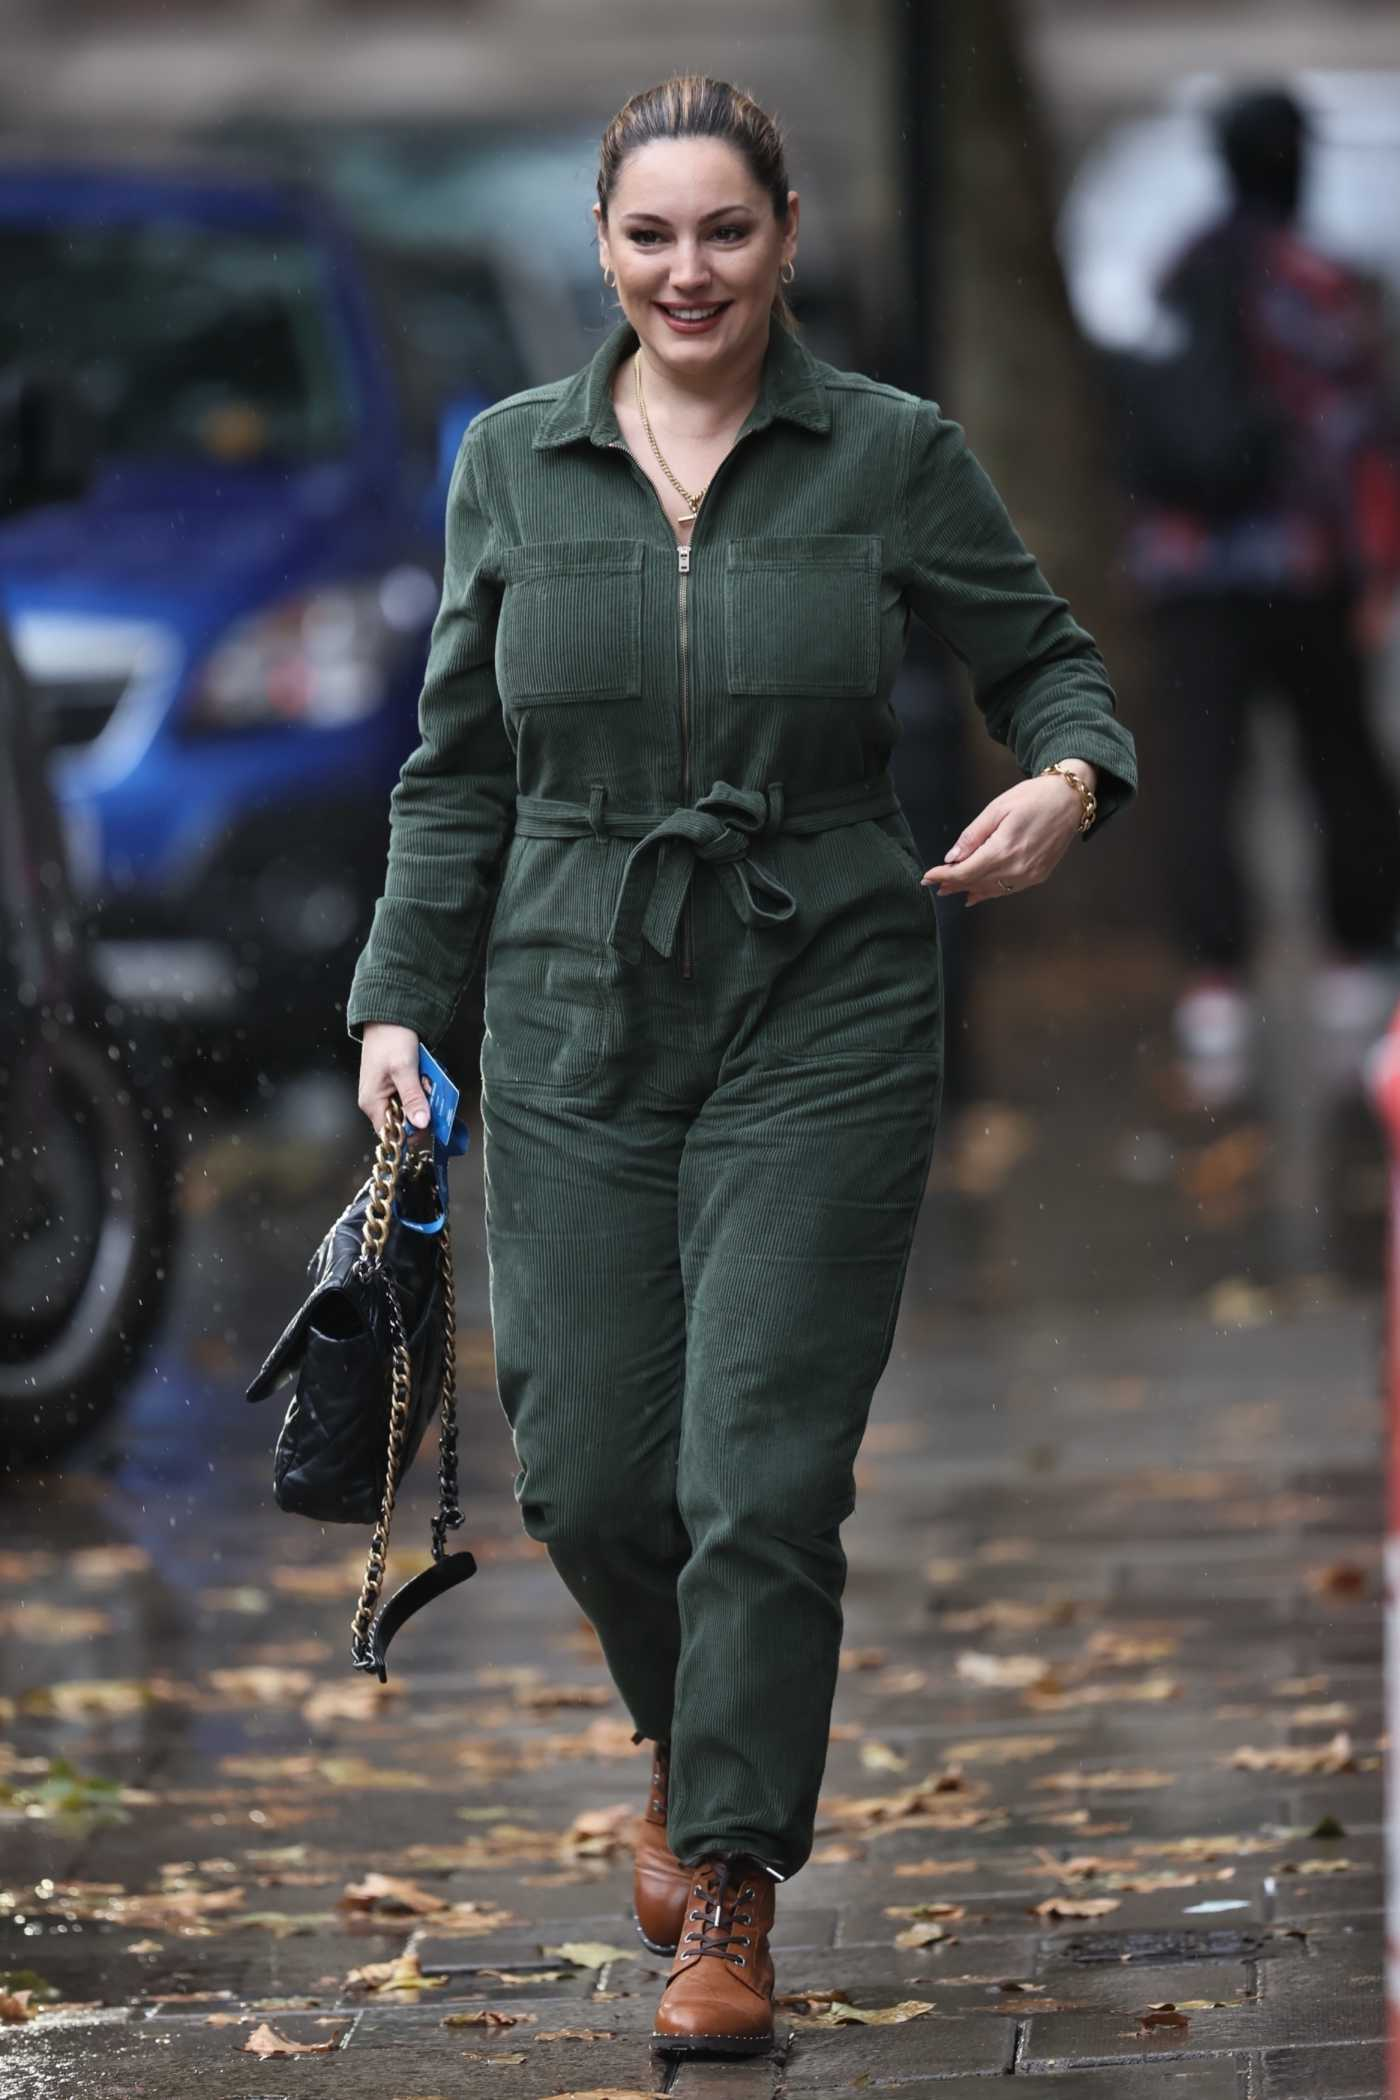 Kelly Brook in a Green Jumpsuit Arrives at the Heart Radio in London 10/09/2020